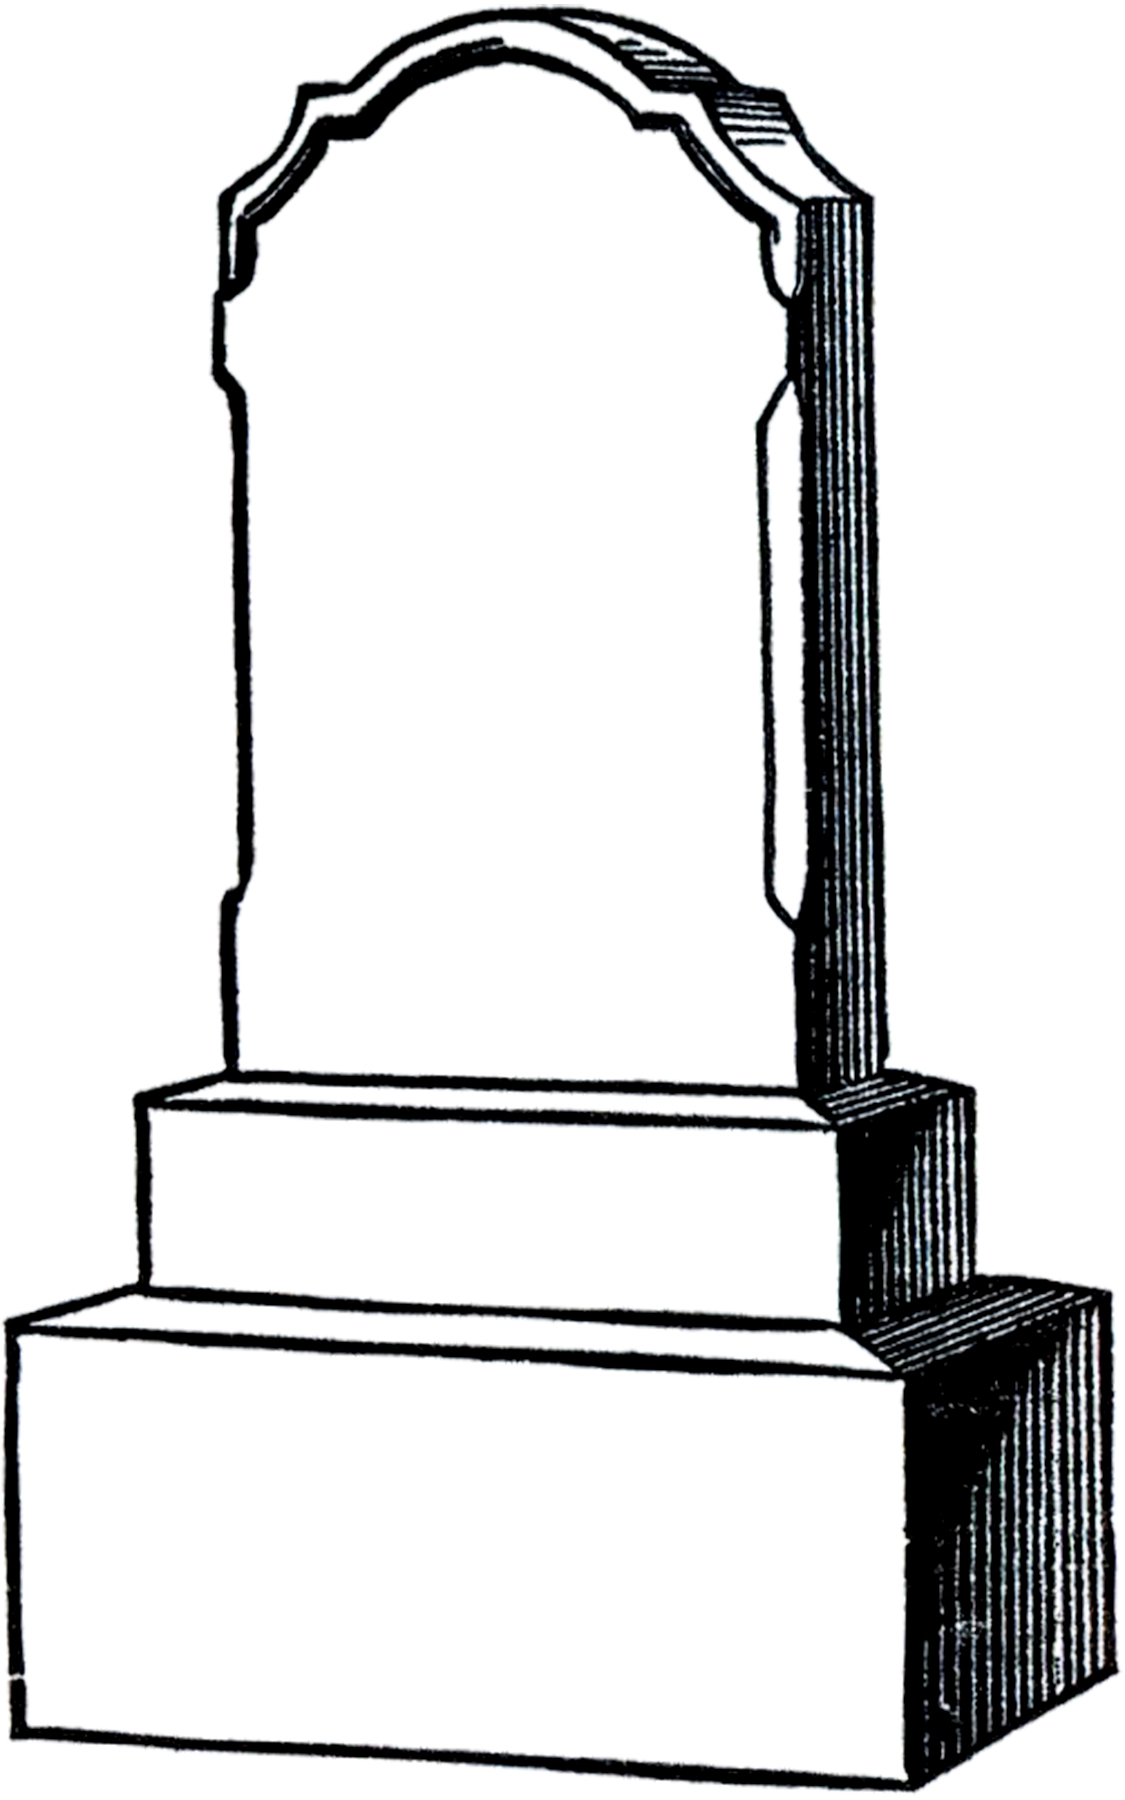 Gravestone clipart #18, Download drawings